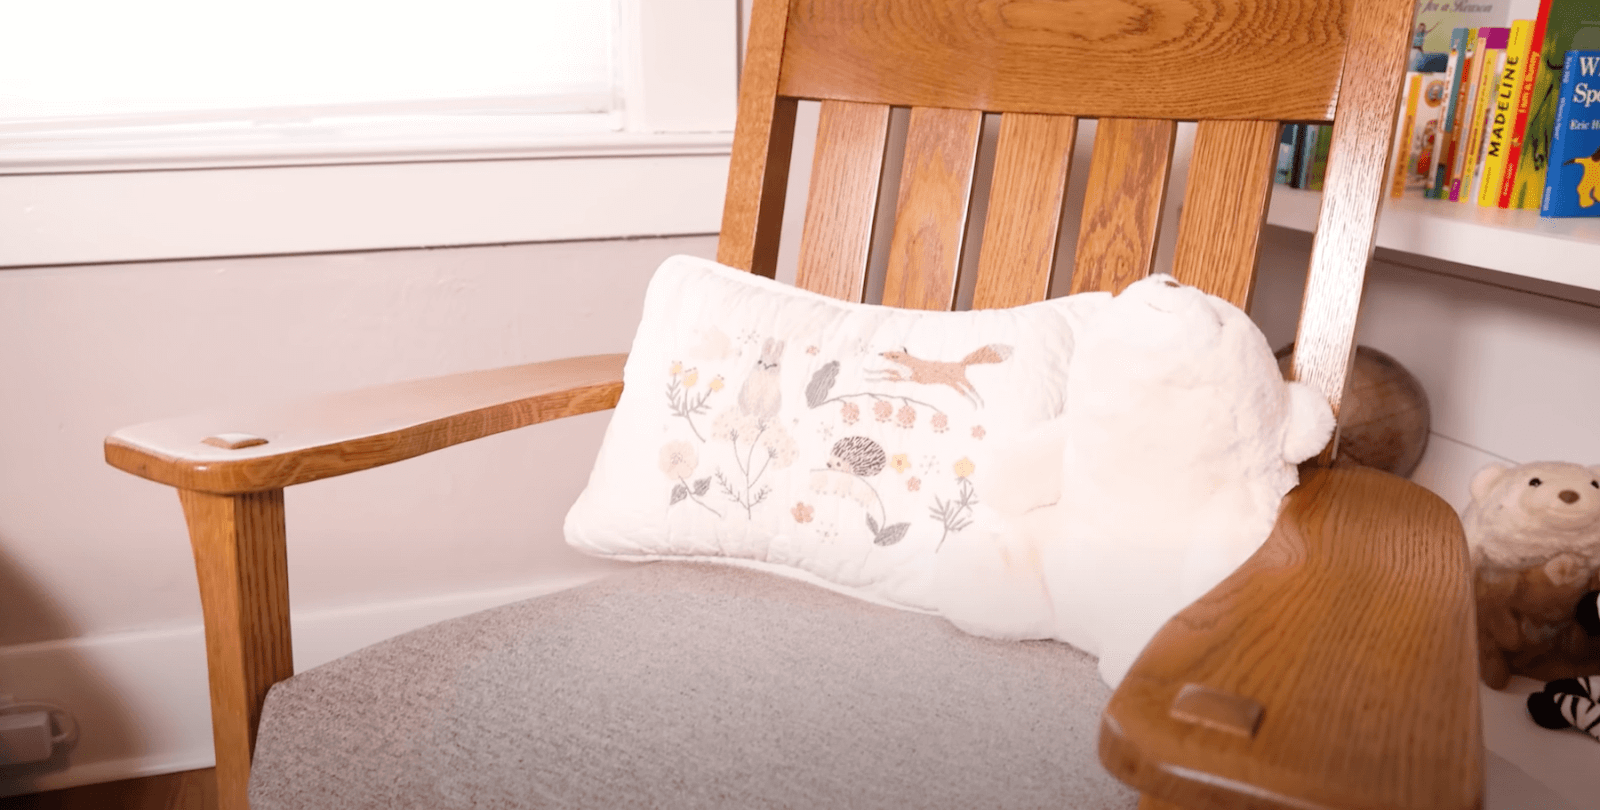 rocking chair close up